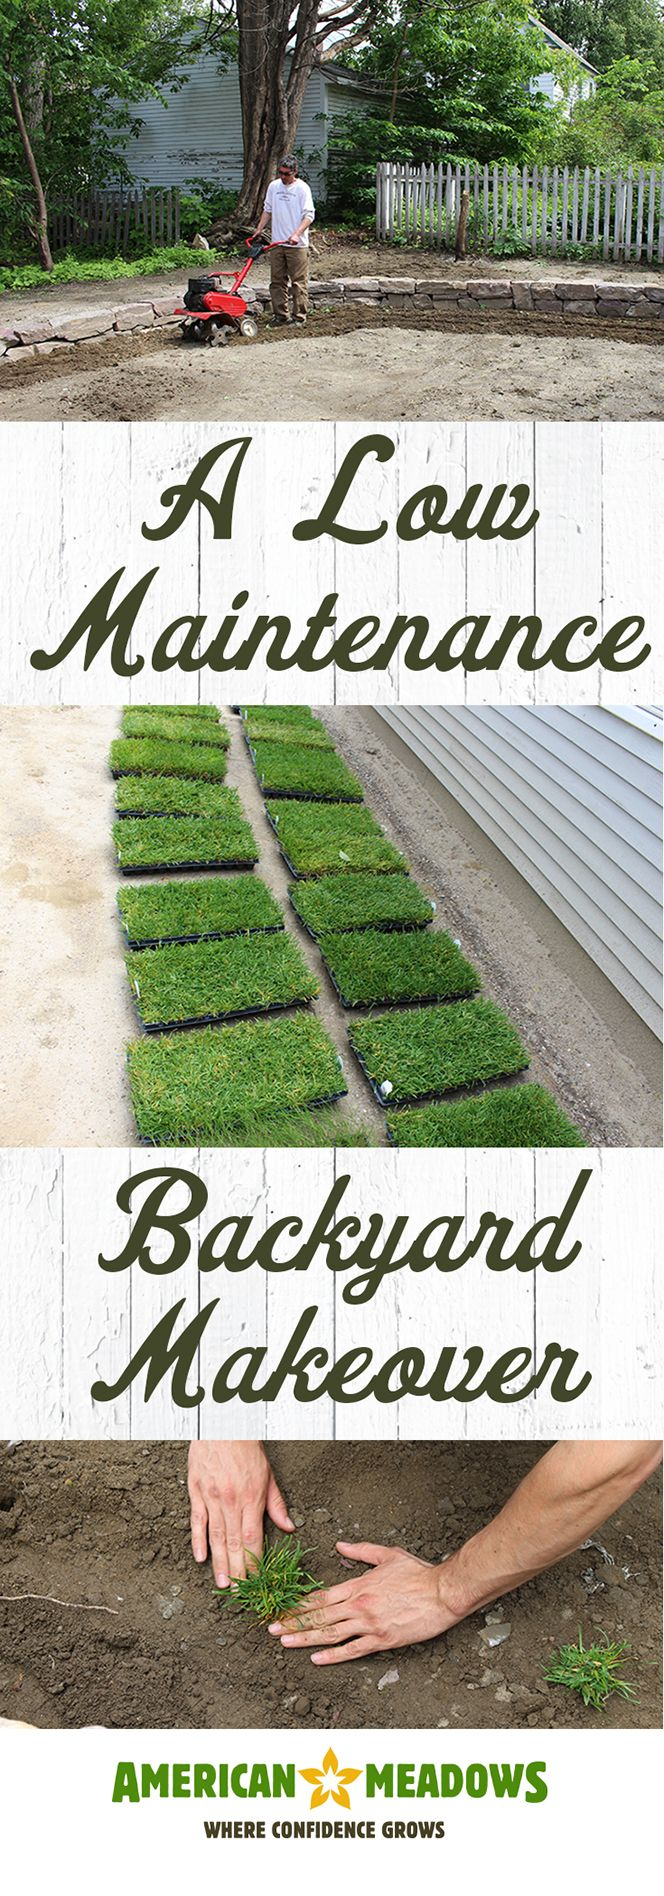 Check out this low-maintenance backyard makeover, featuring our hassle-free Low-Mow and Dog-Tuff grass plugs!